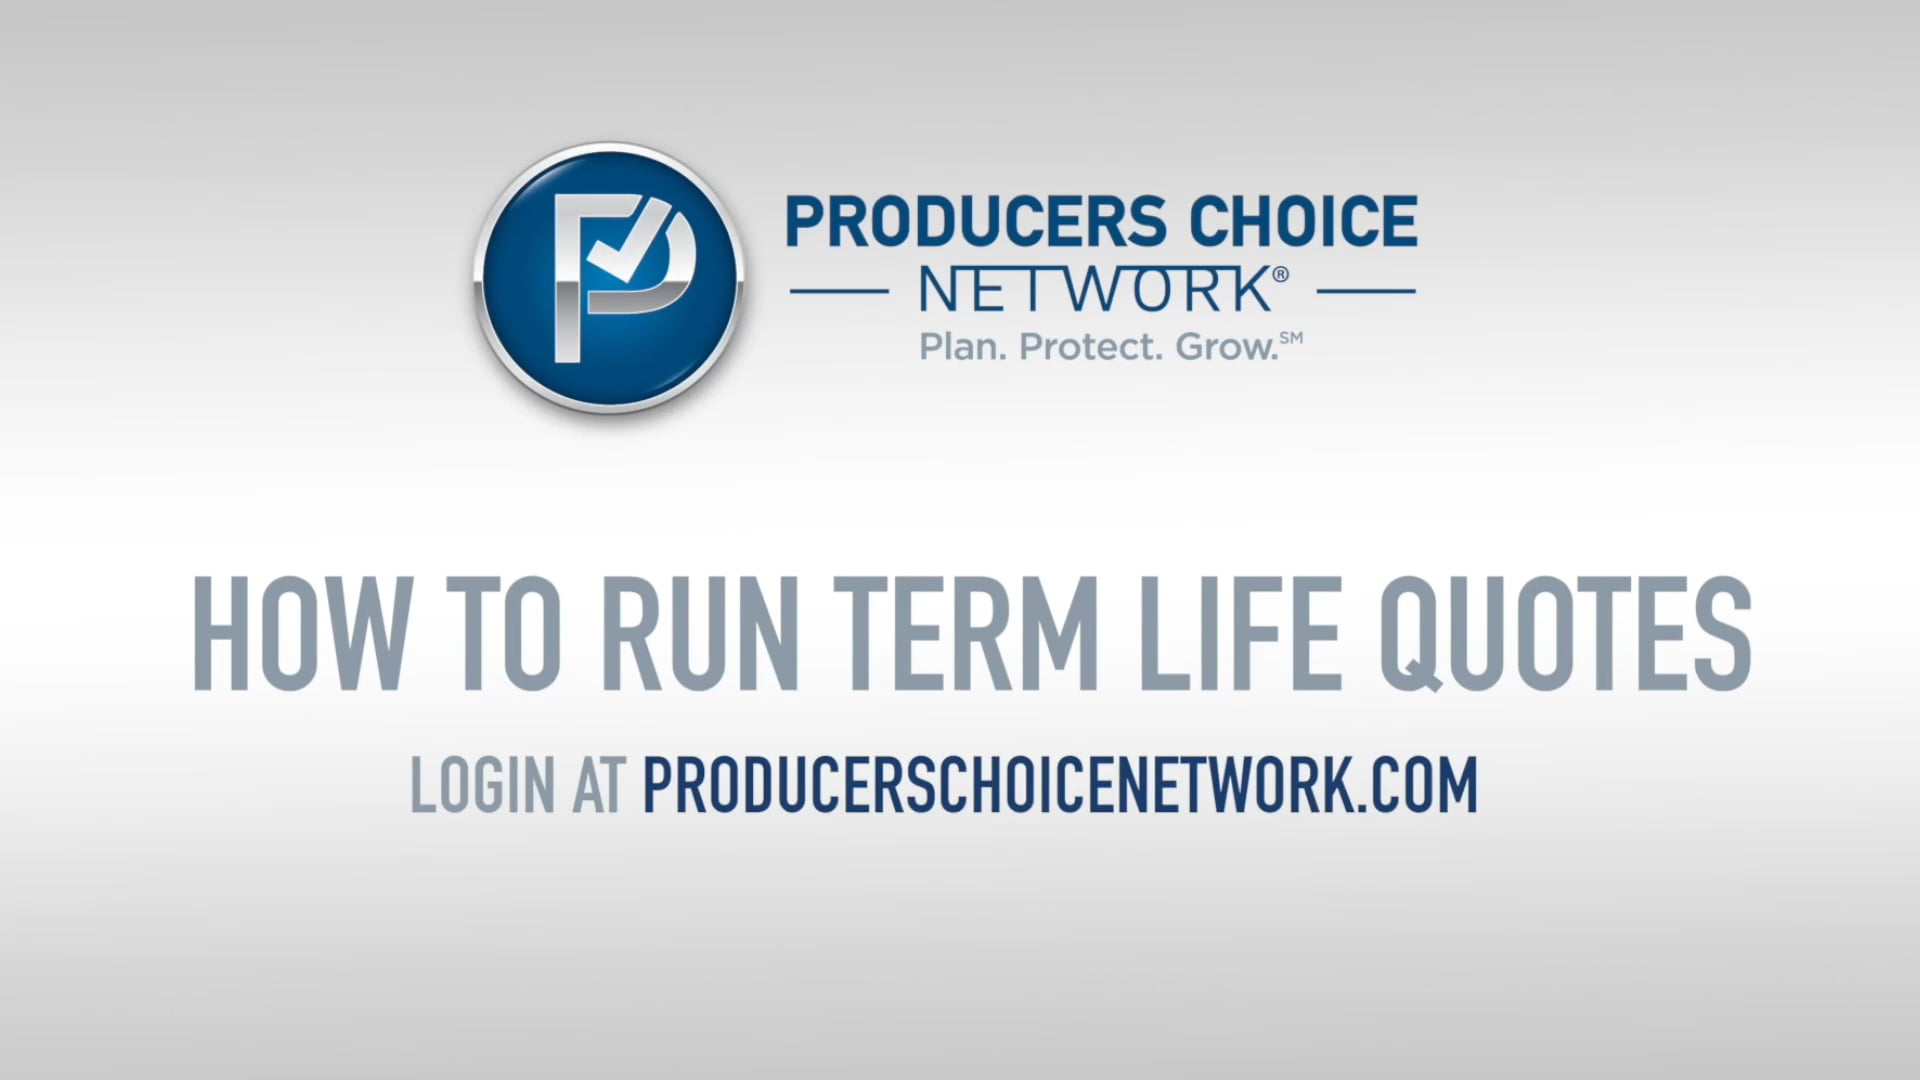 PCN Presents: How to Run a Term Life Quote